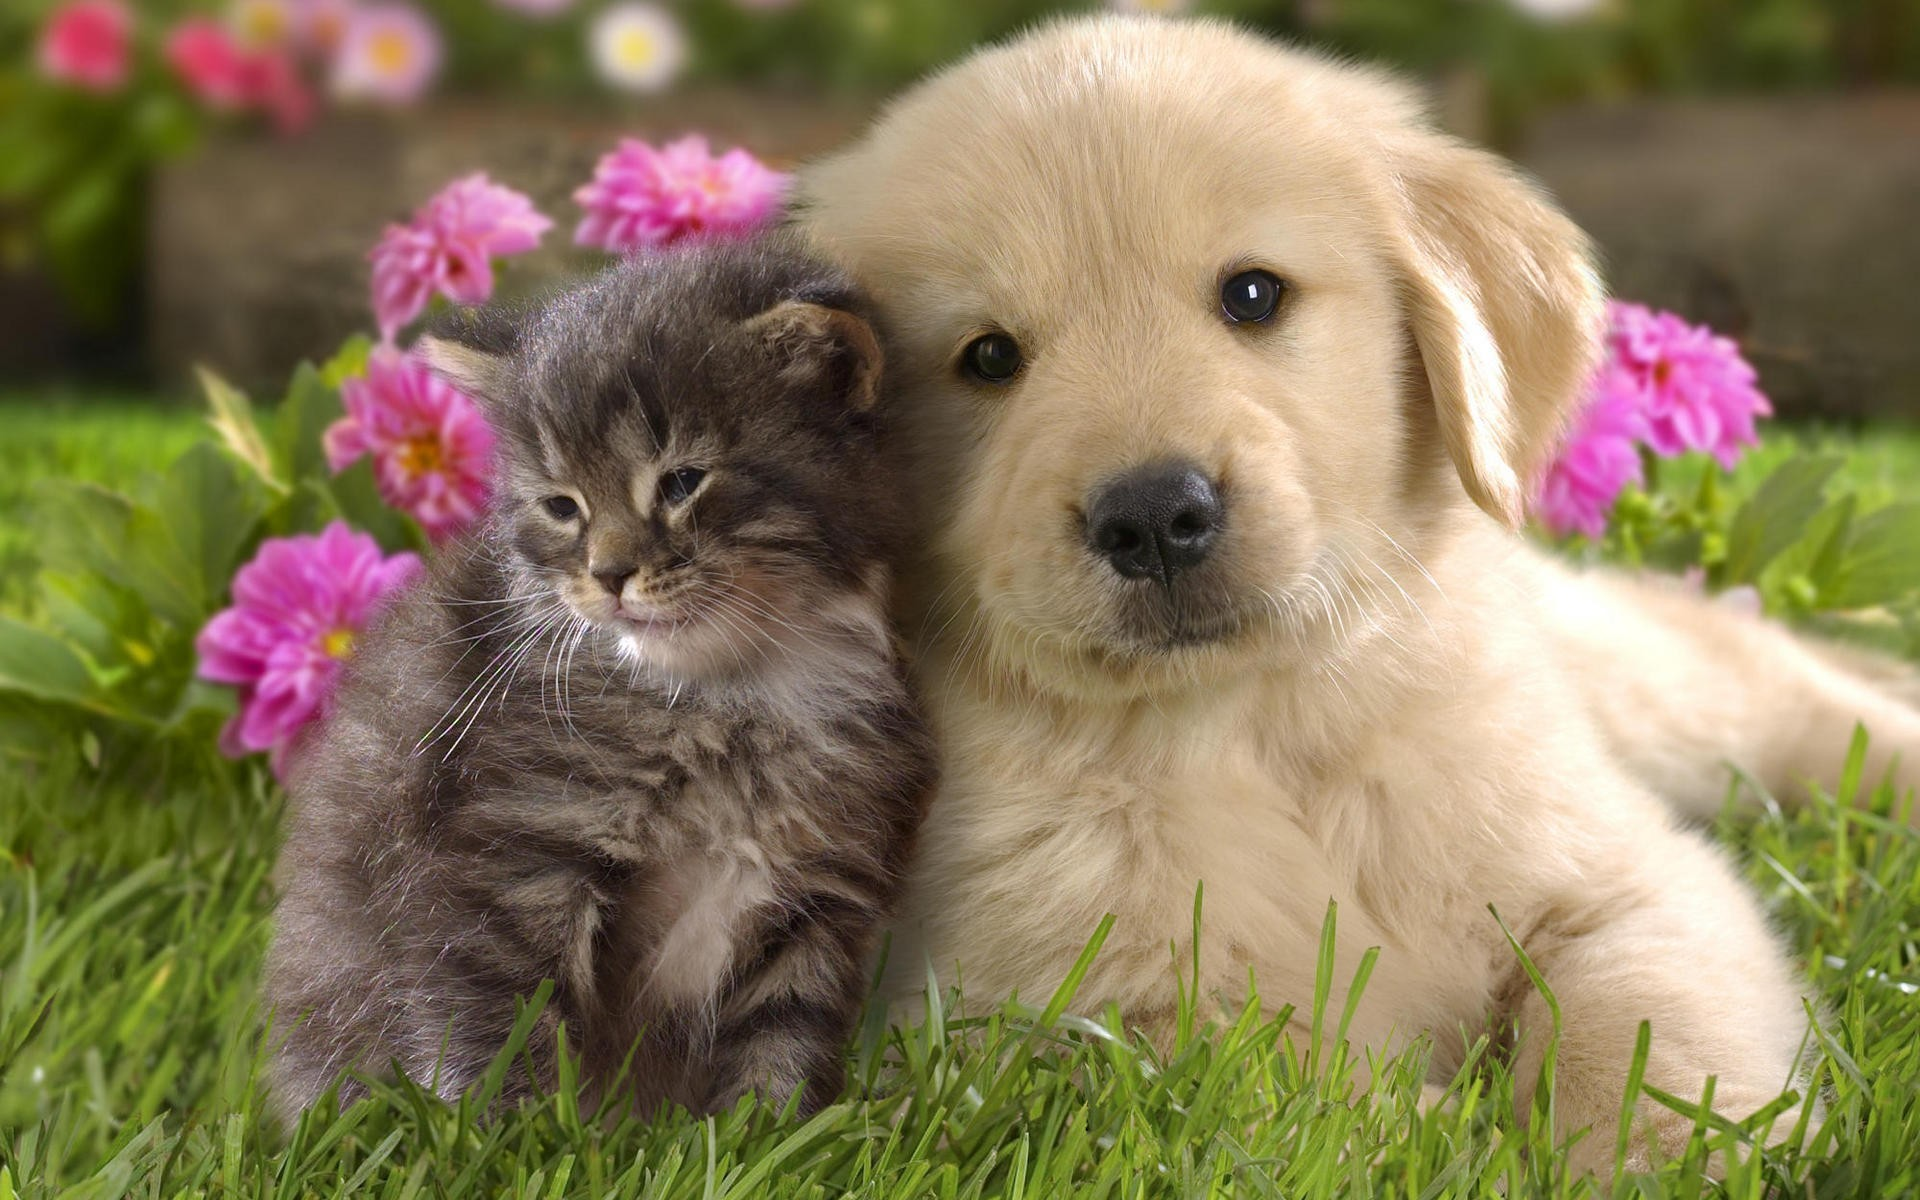 Download Cute Kitten and Puppy Wallpaper Wallpapers 1920x1200